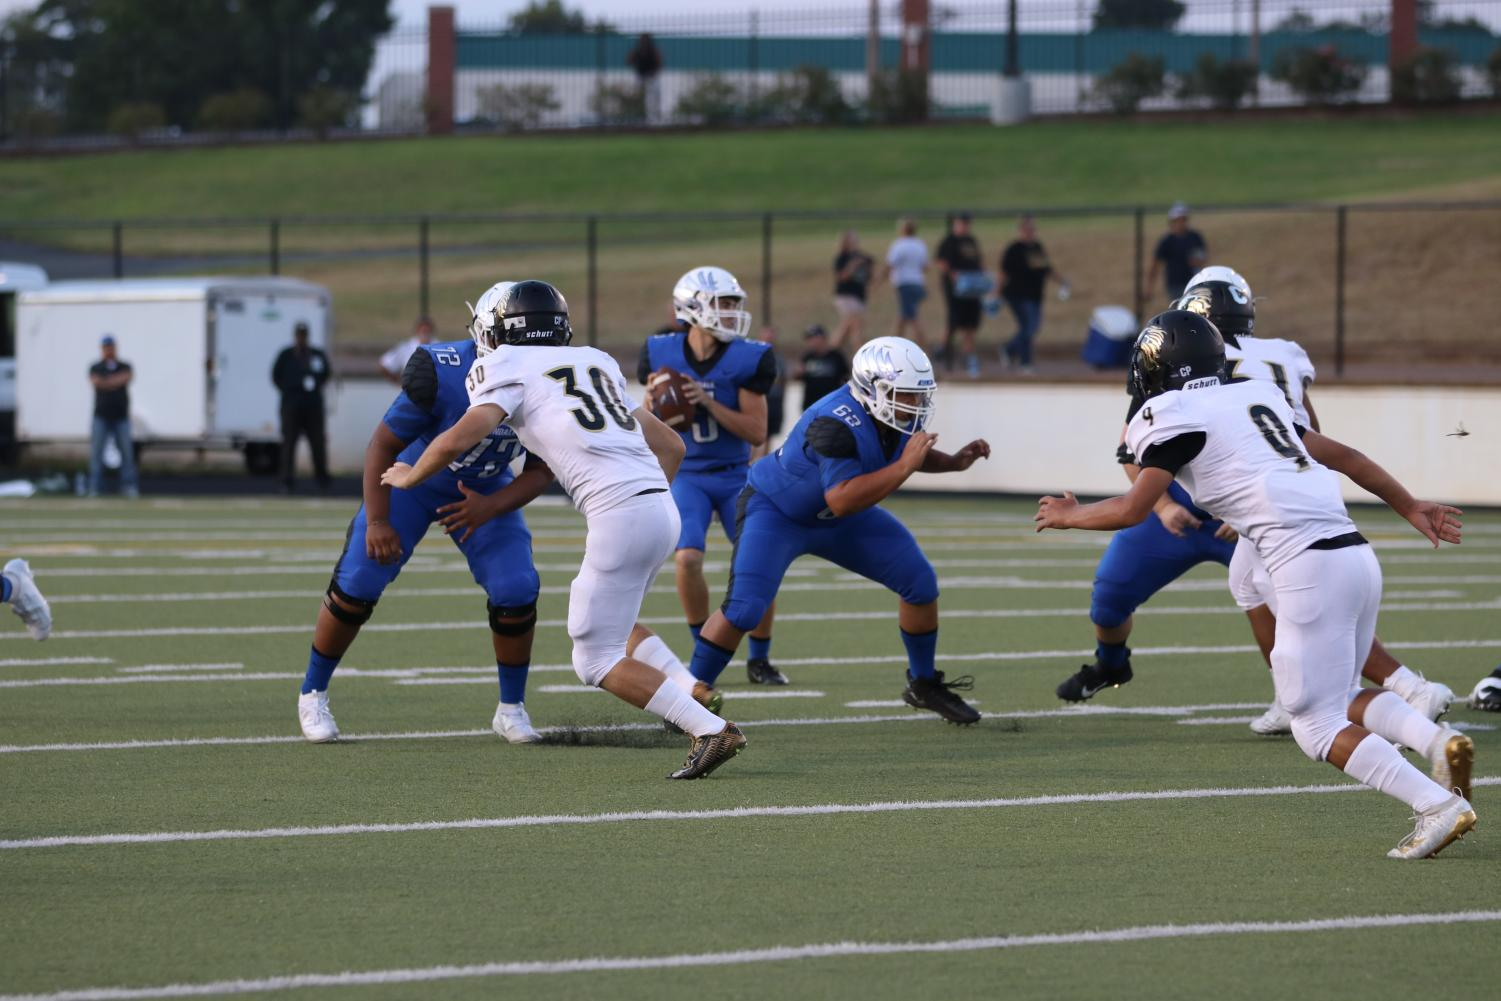 Senior quarterback Brayson Campbell sits in the pocket, waiting for a chance to make a good throw while his teammates block the Kaufman opponents for him. The Eagles won the game 45-10.